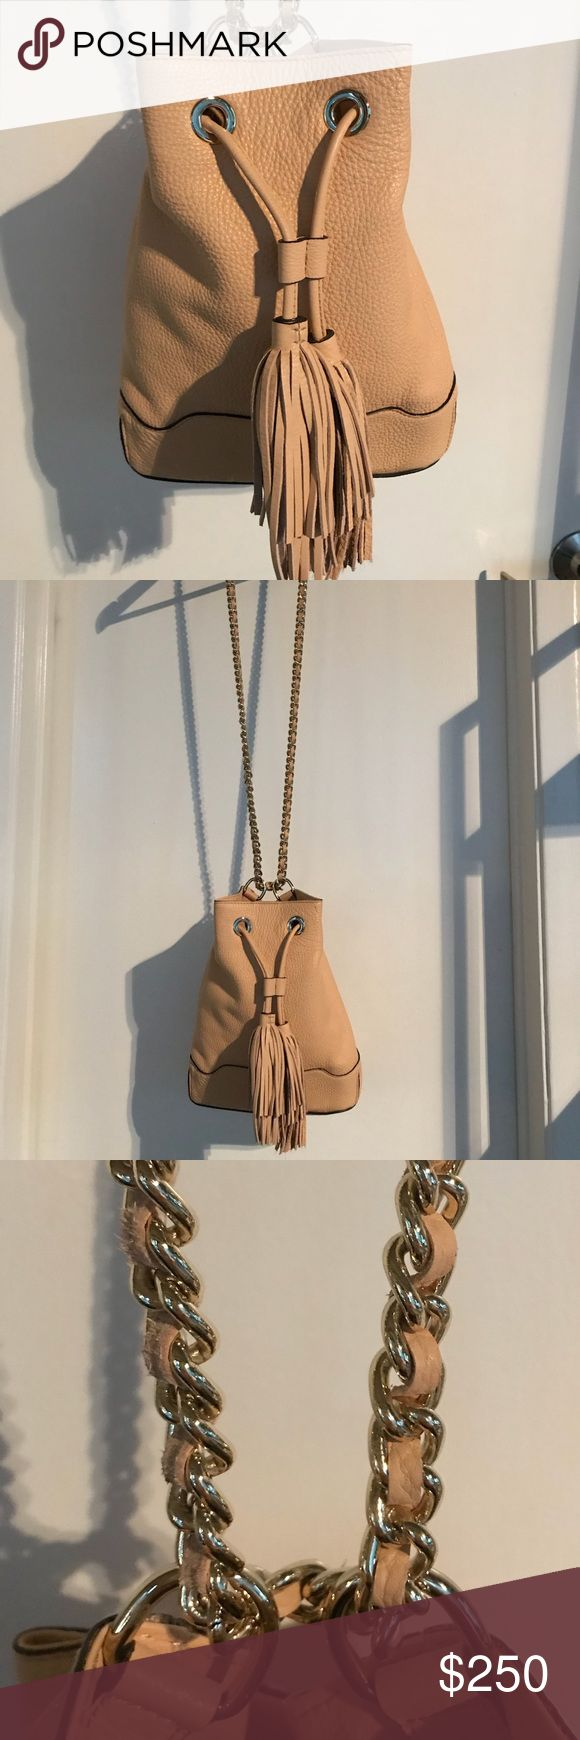 Rebecca Minkoff Large Bucket Bag Never used, no tags. This bag is no longer sold, bought a few years ago but have not even used it once. BLUSH color. Perfect condition. Sold as seen. Rebecca Minkoff Bags Crossbody Bags